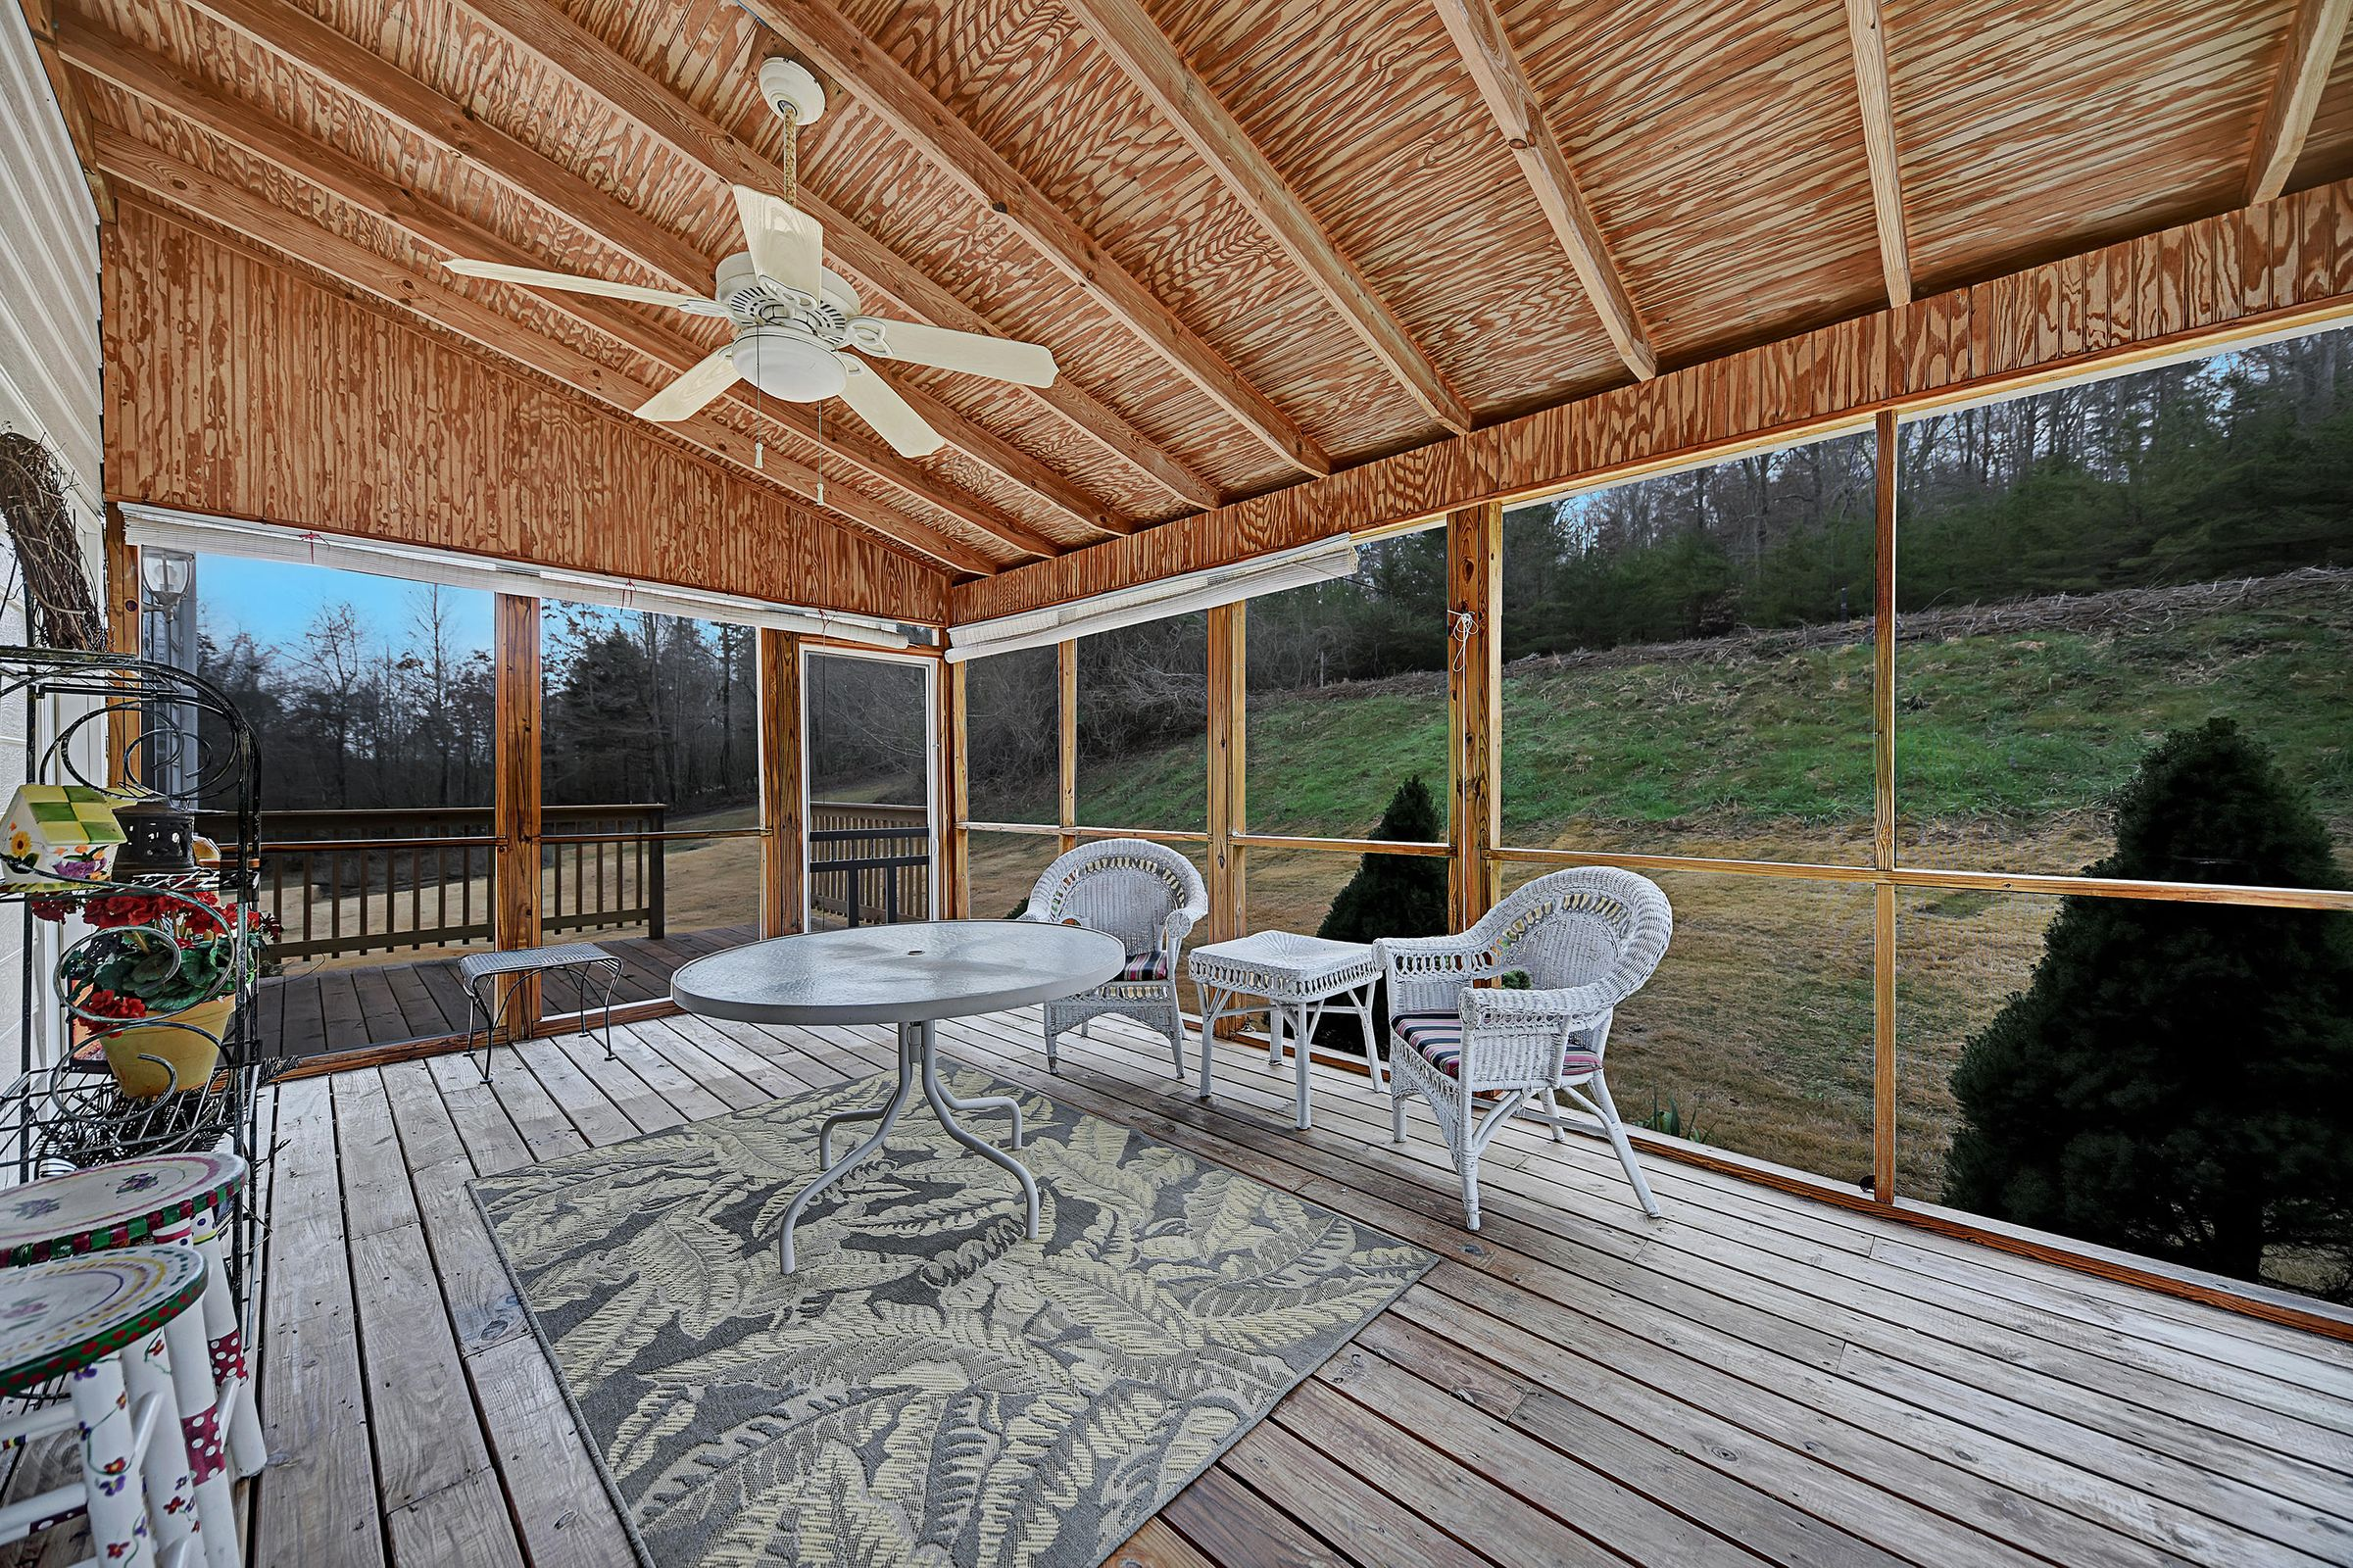 REFURBISHED SCREENED IN PORCH